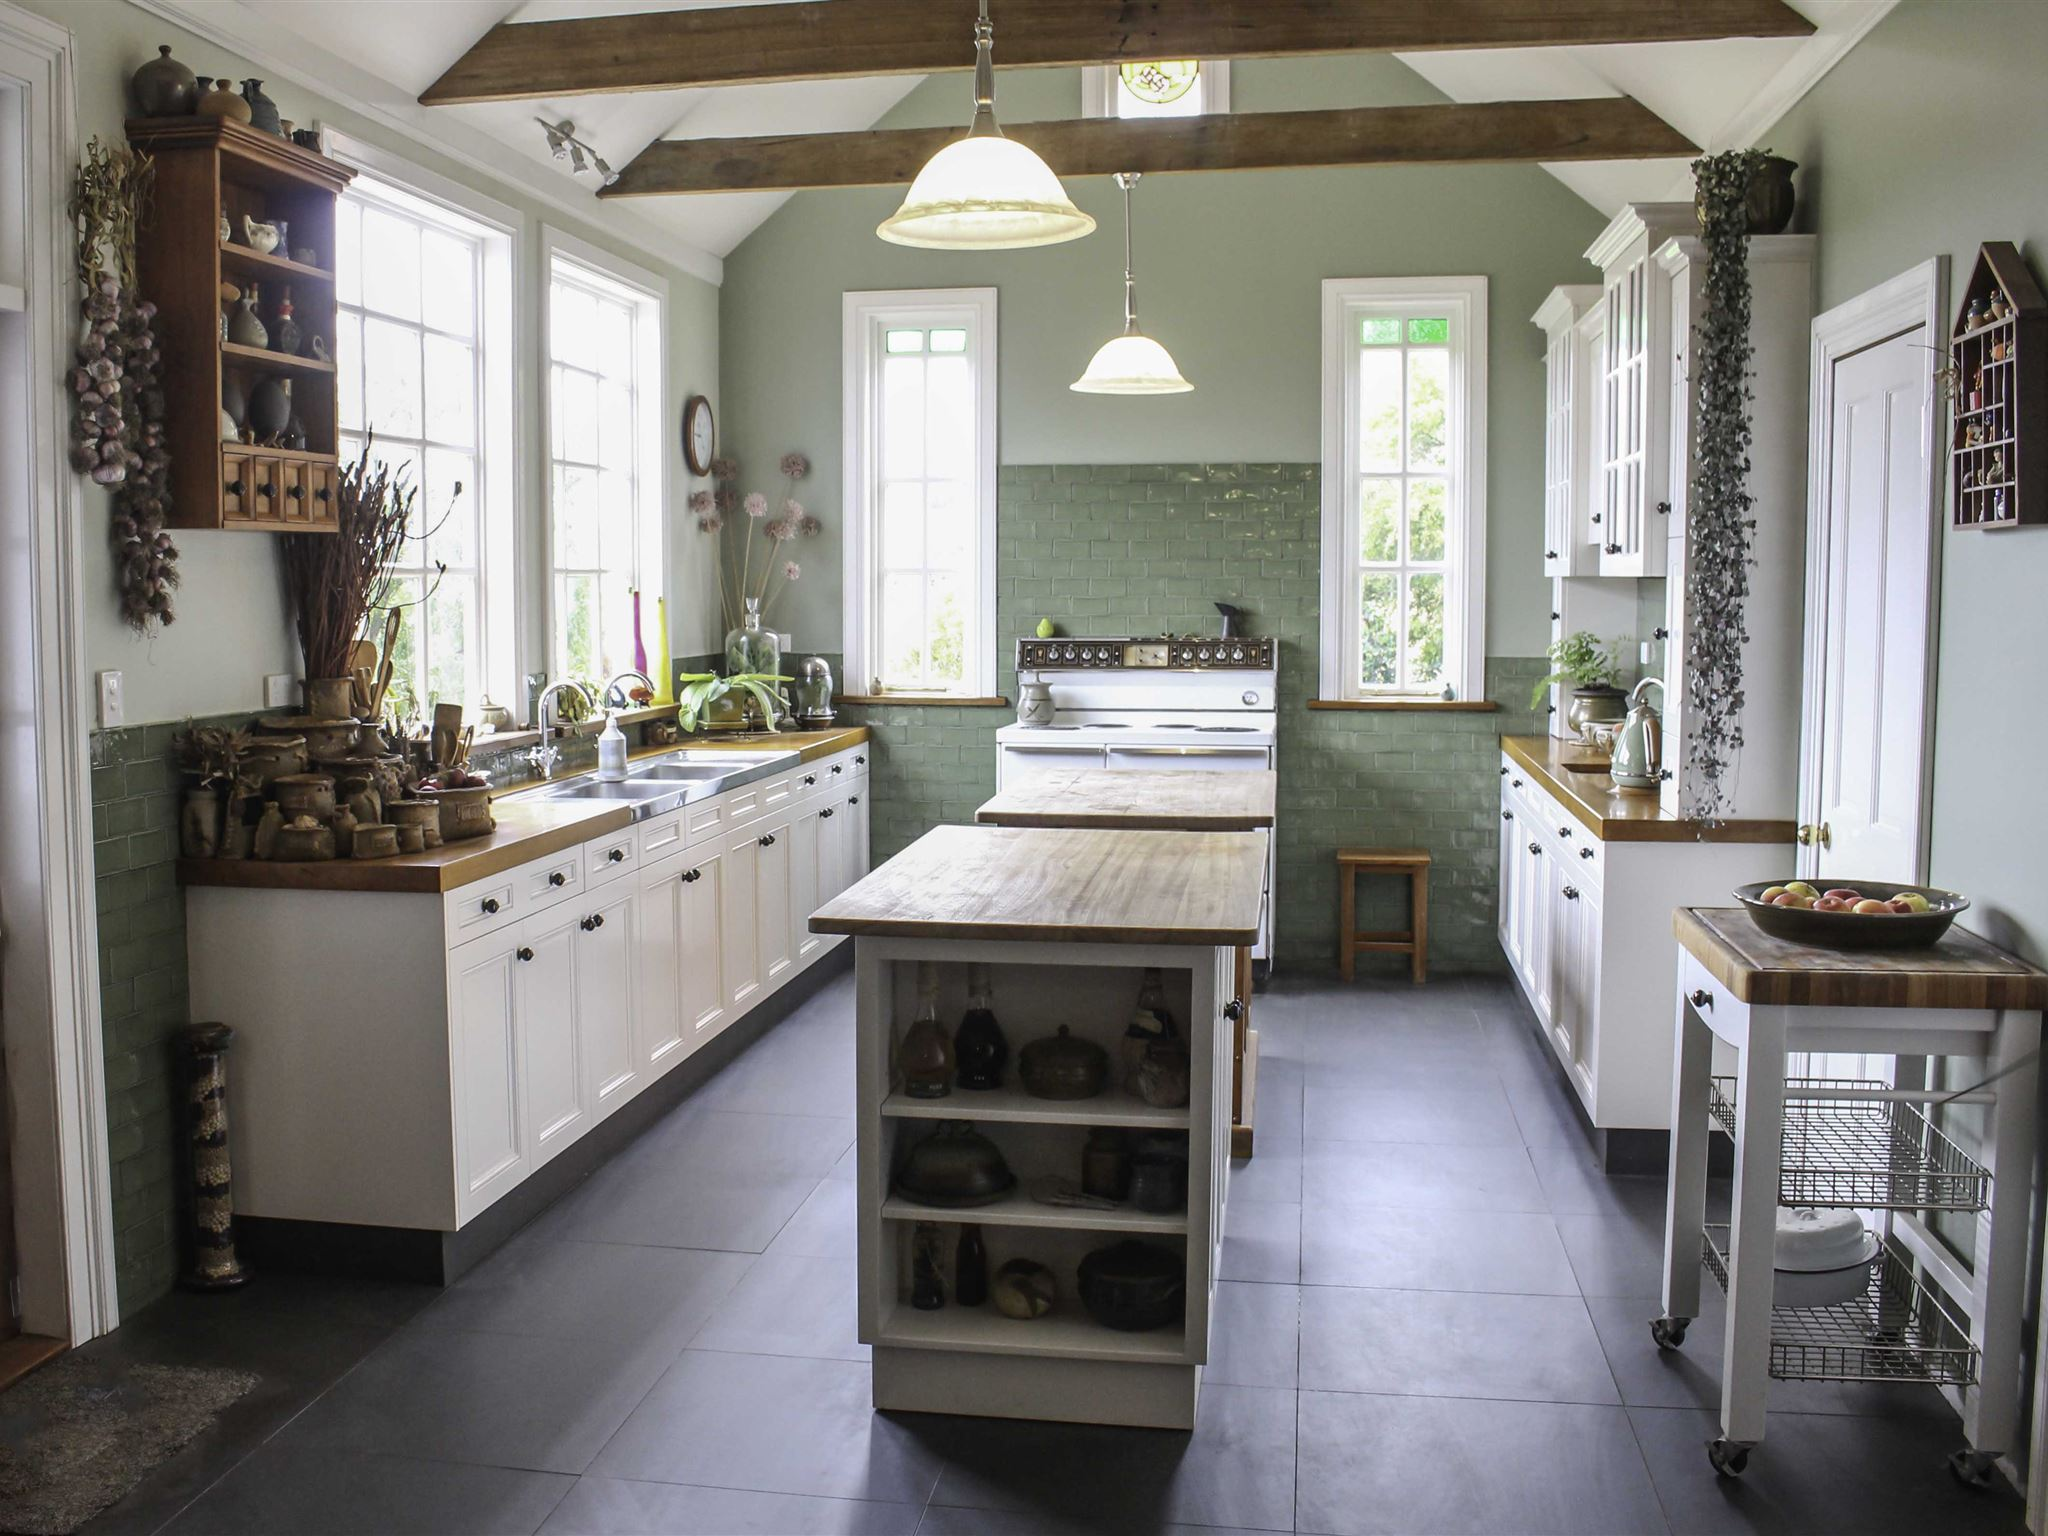 The stunning Farmhouse Kitchen - spend up to two days learning the secrets of real Italian cooking.